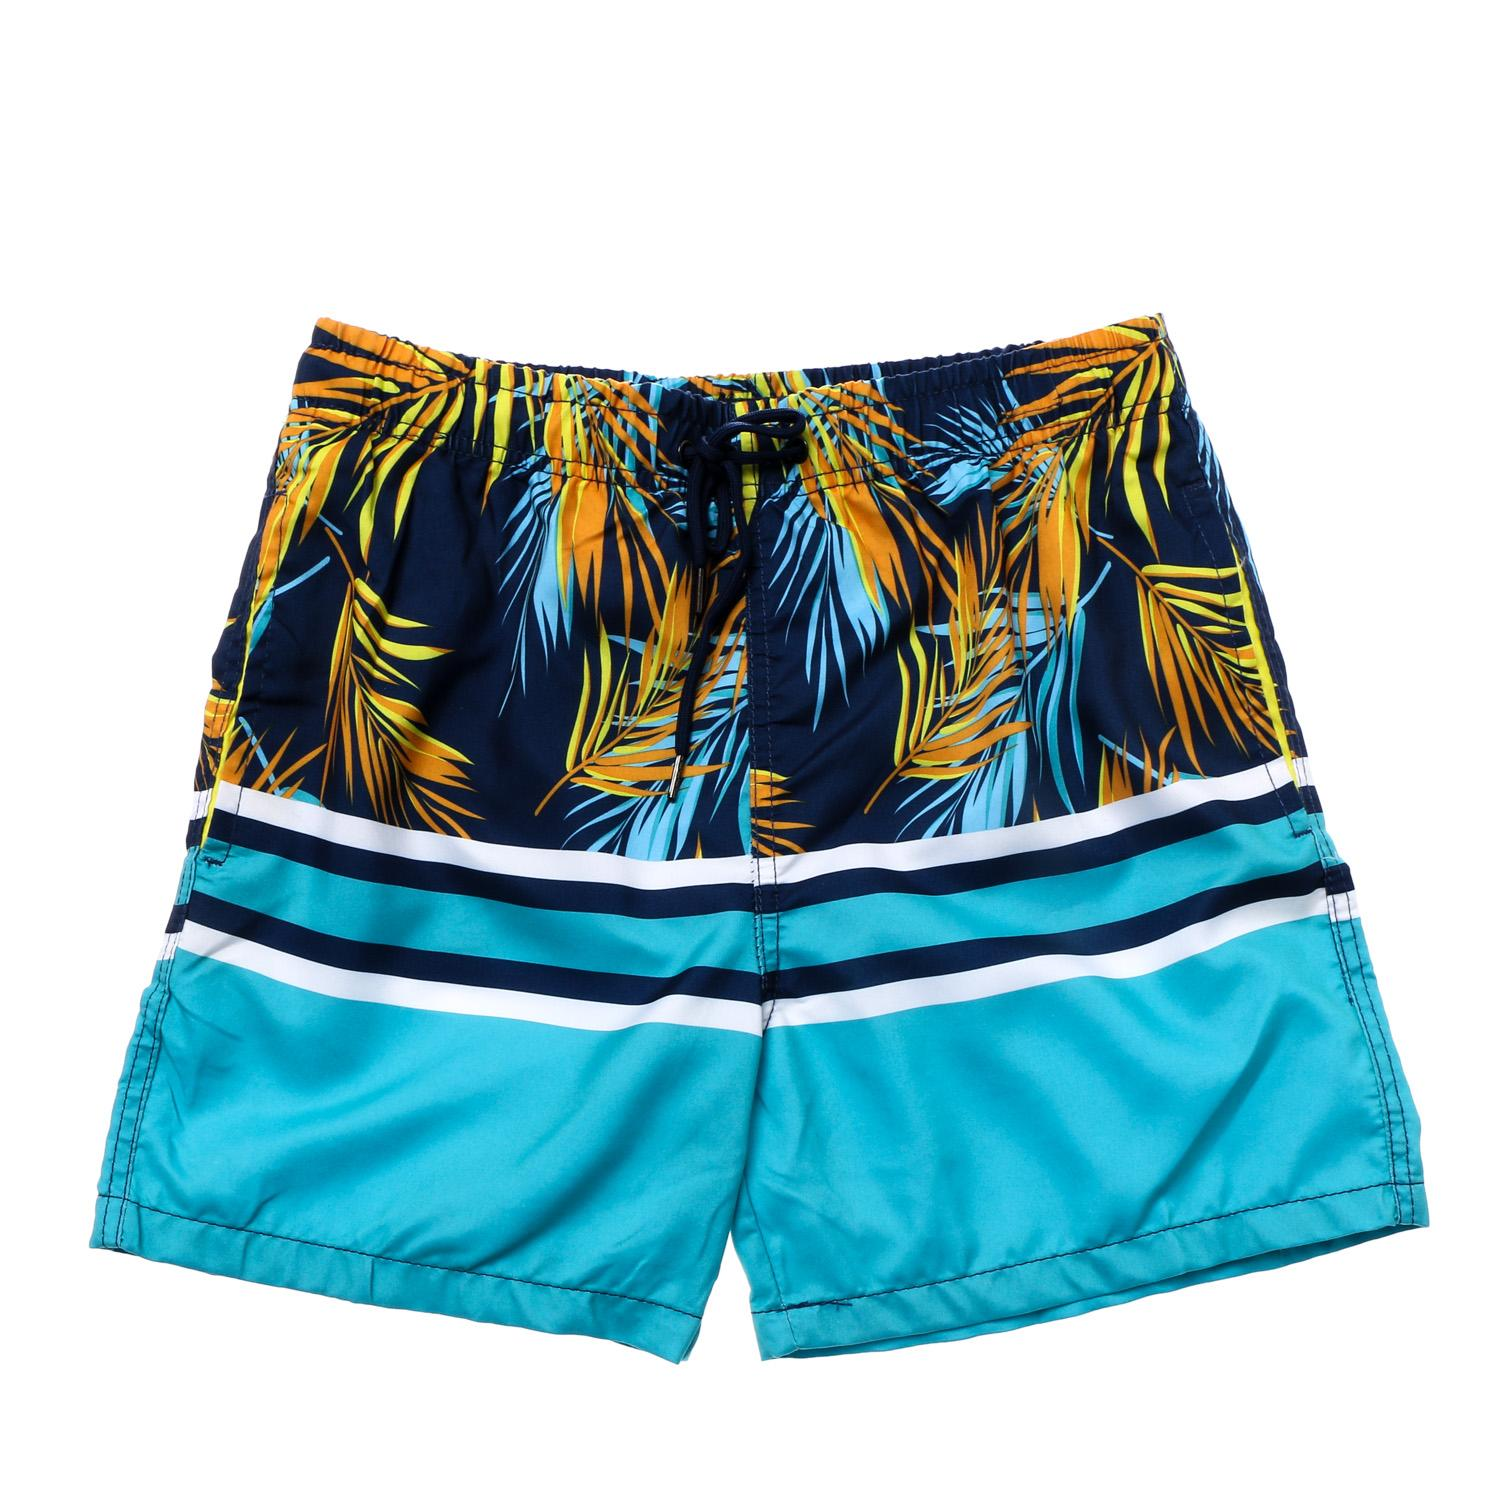 149a952675 Swimwear for Men for sale - Mens Swimming Wear online brands, prices ...